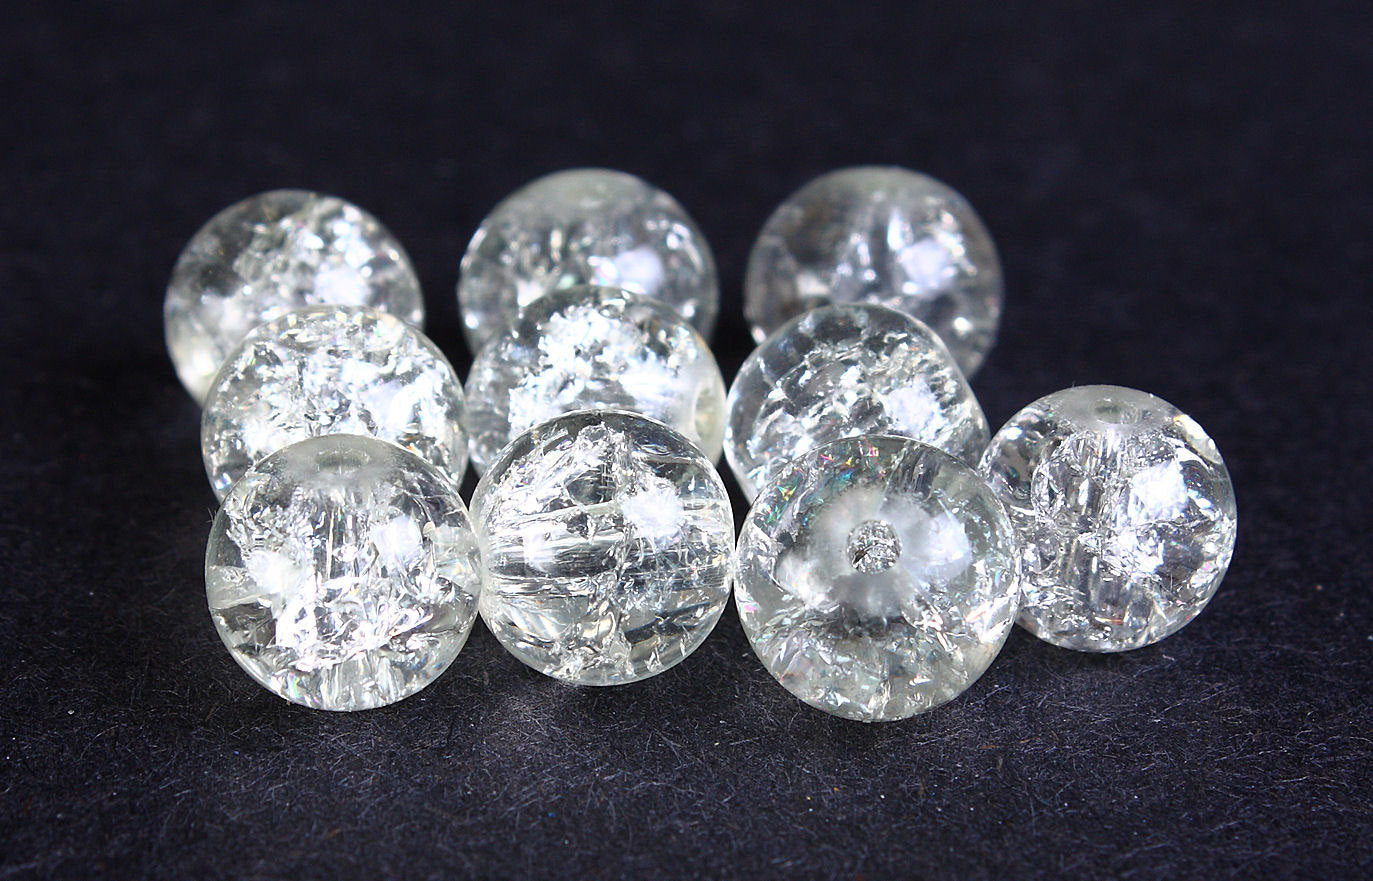 10mm Clear crackled beads - 10mm transparent round beads - 10mm crackle glass bead - 10 pieces (234)